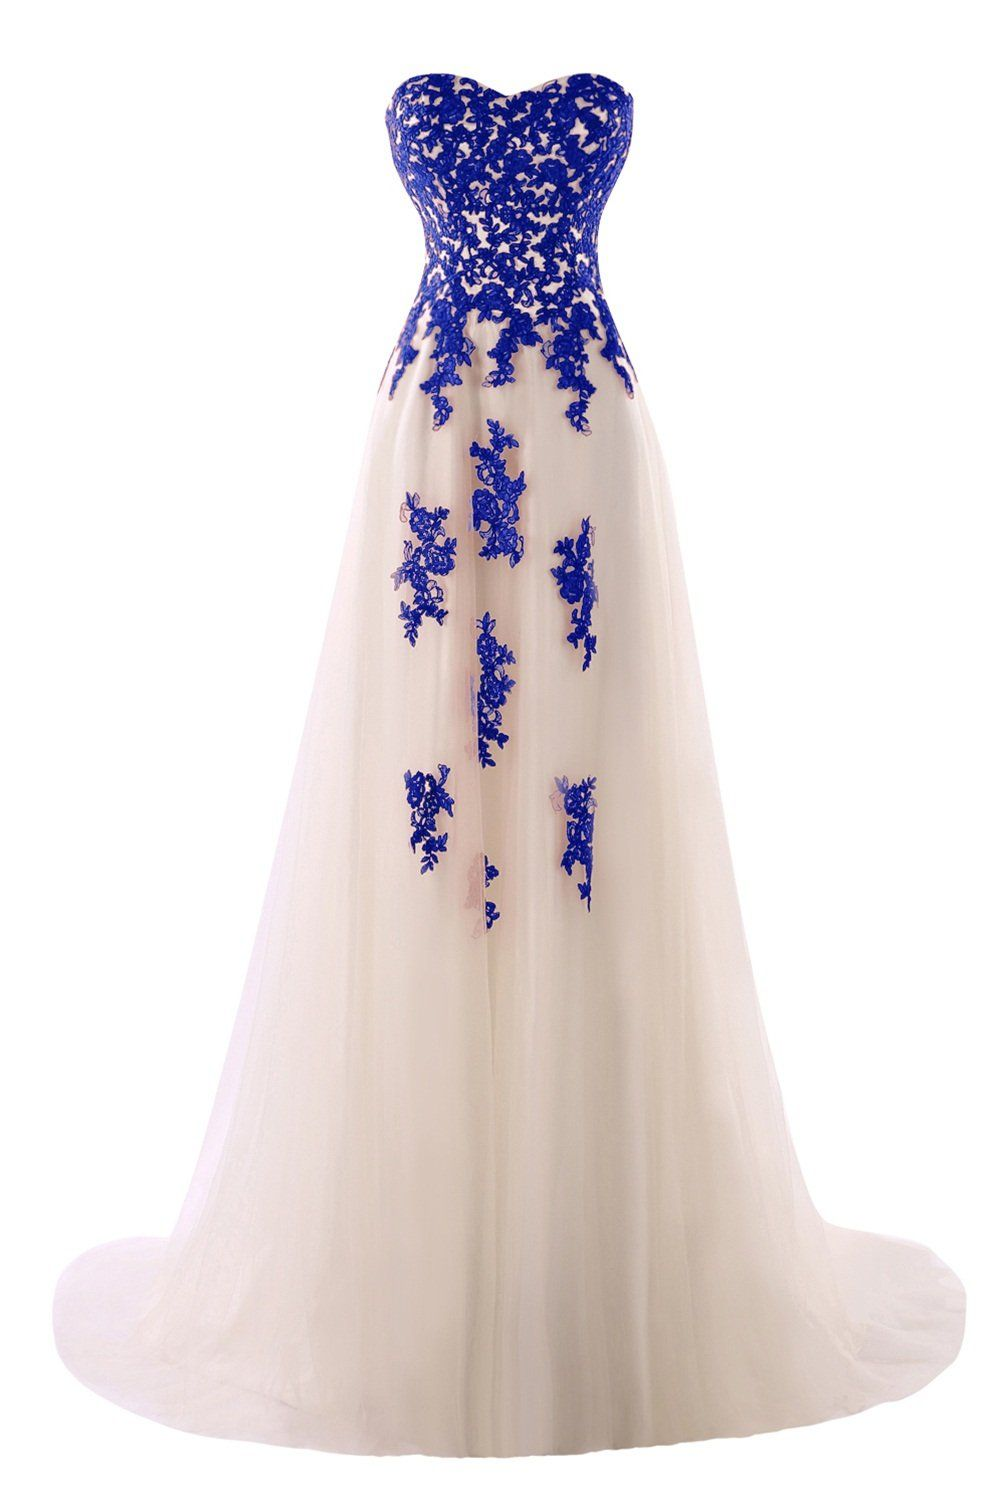 Dasior womenus tulle lace long evening party dress prom gown with